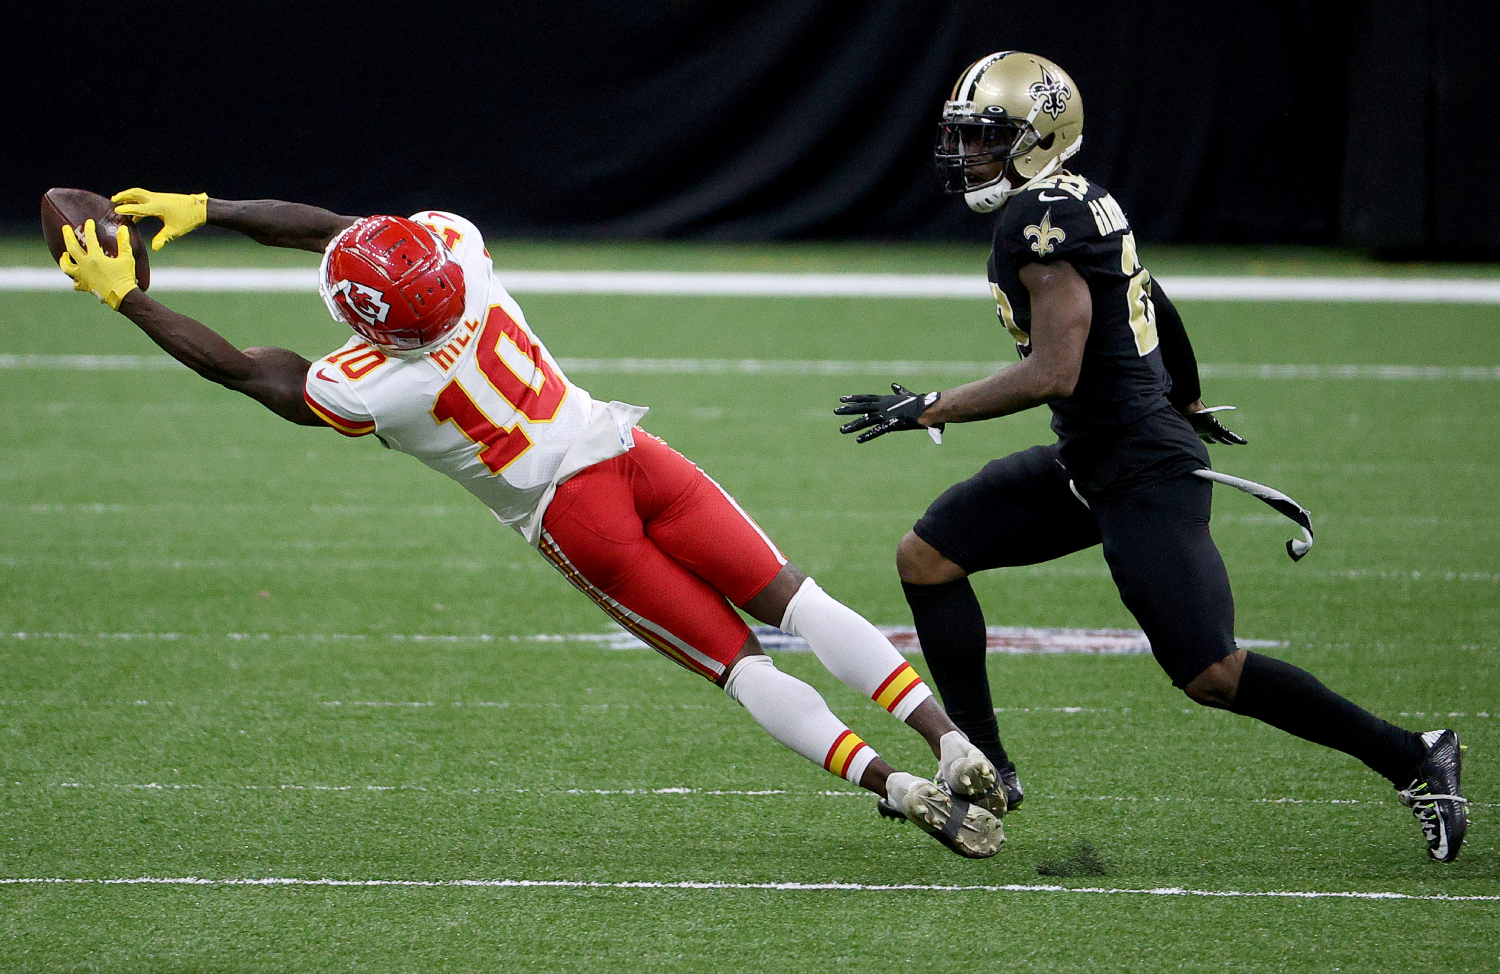 Why did Tyreek Hill shove his coach?